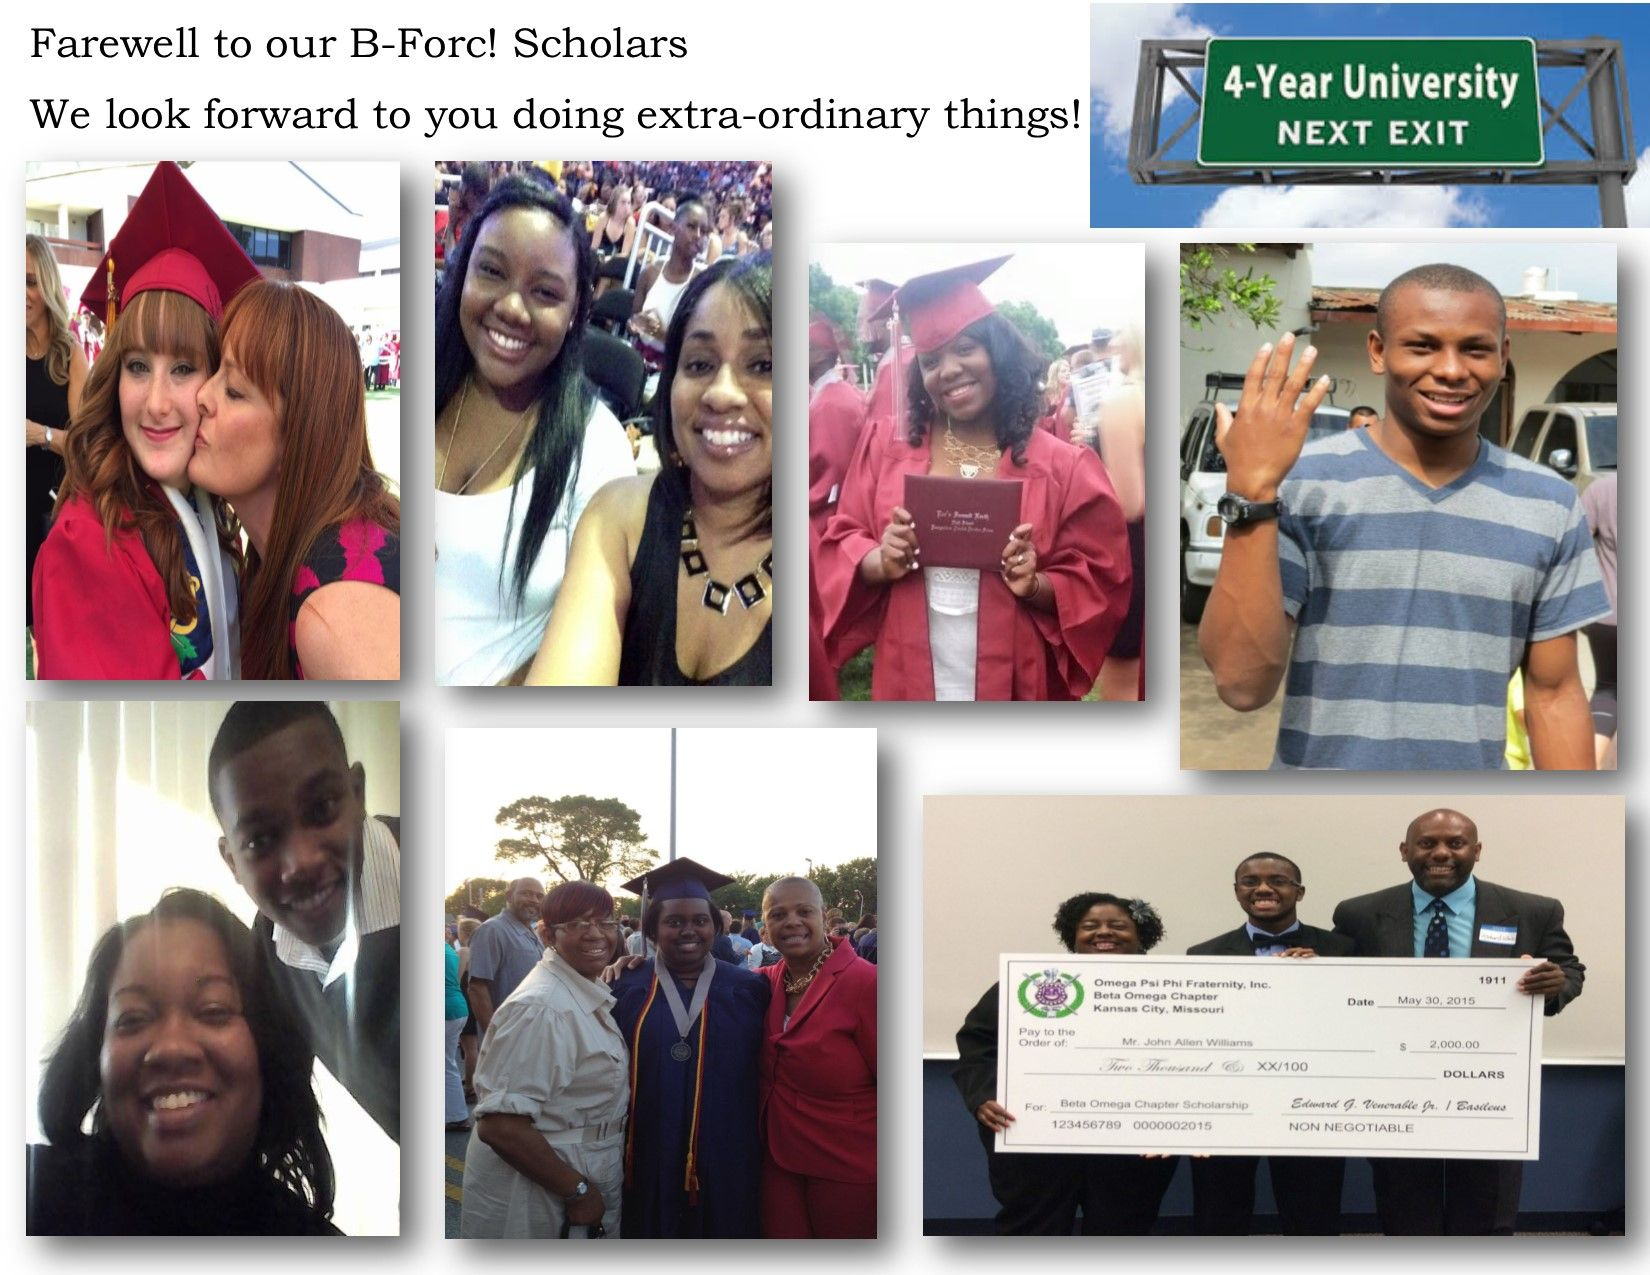 2015 B-Forc! Scholars heading off to #college.They're not just going they are going as #Scholarship #winners.Just know before the journey begins we are B-Forc! Proud of each of you. #NoStudentLoans and B-Focused!  Aspiring nurses, material physicist/engineer, attorney, business major, the arts and a doctor...WOW!